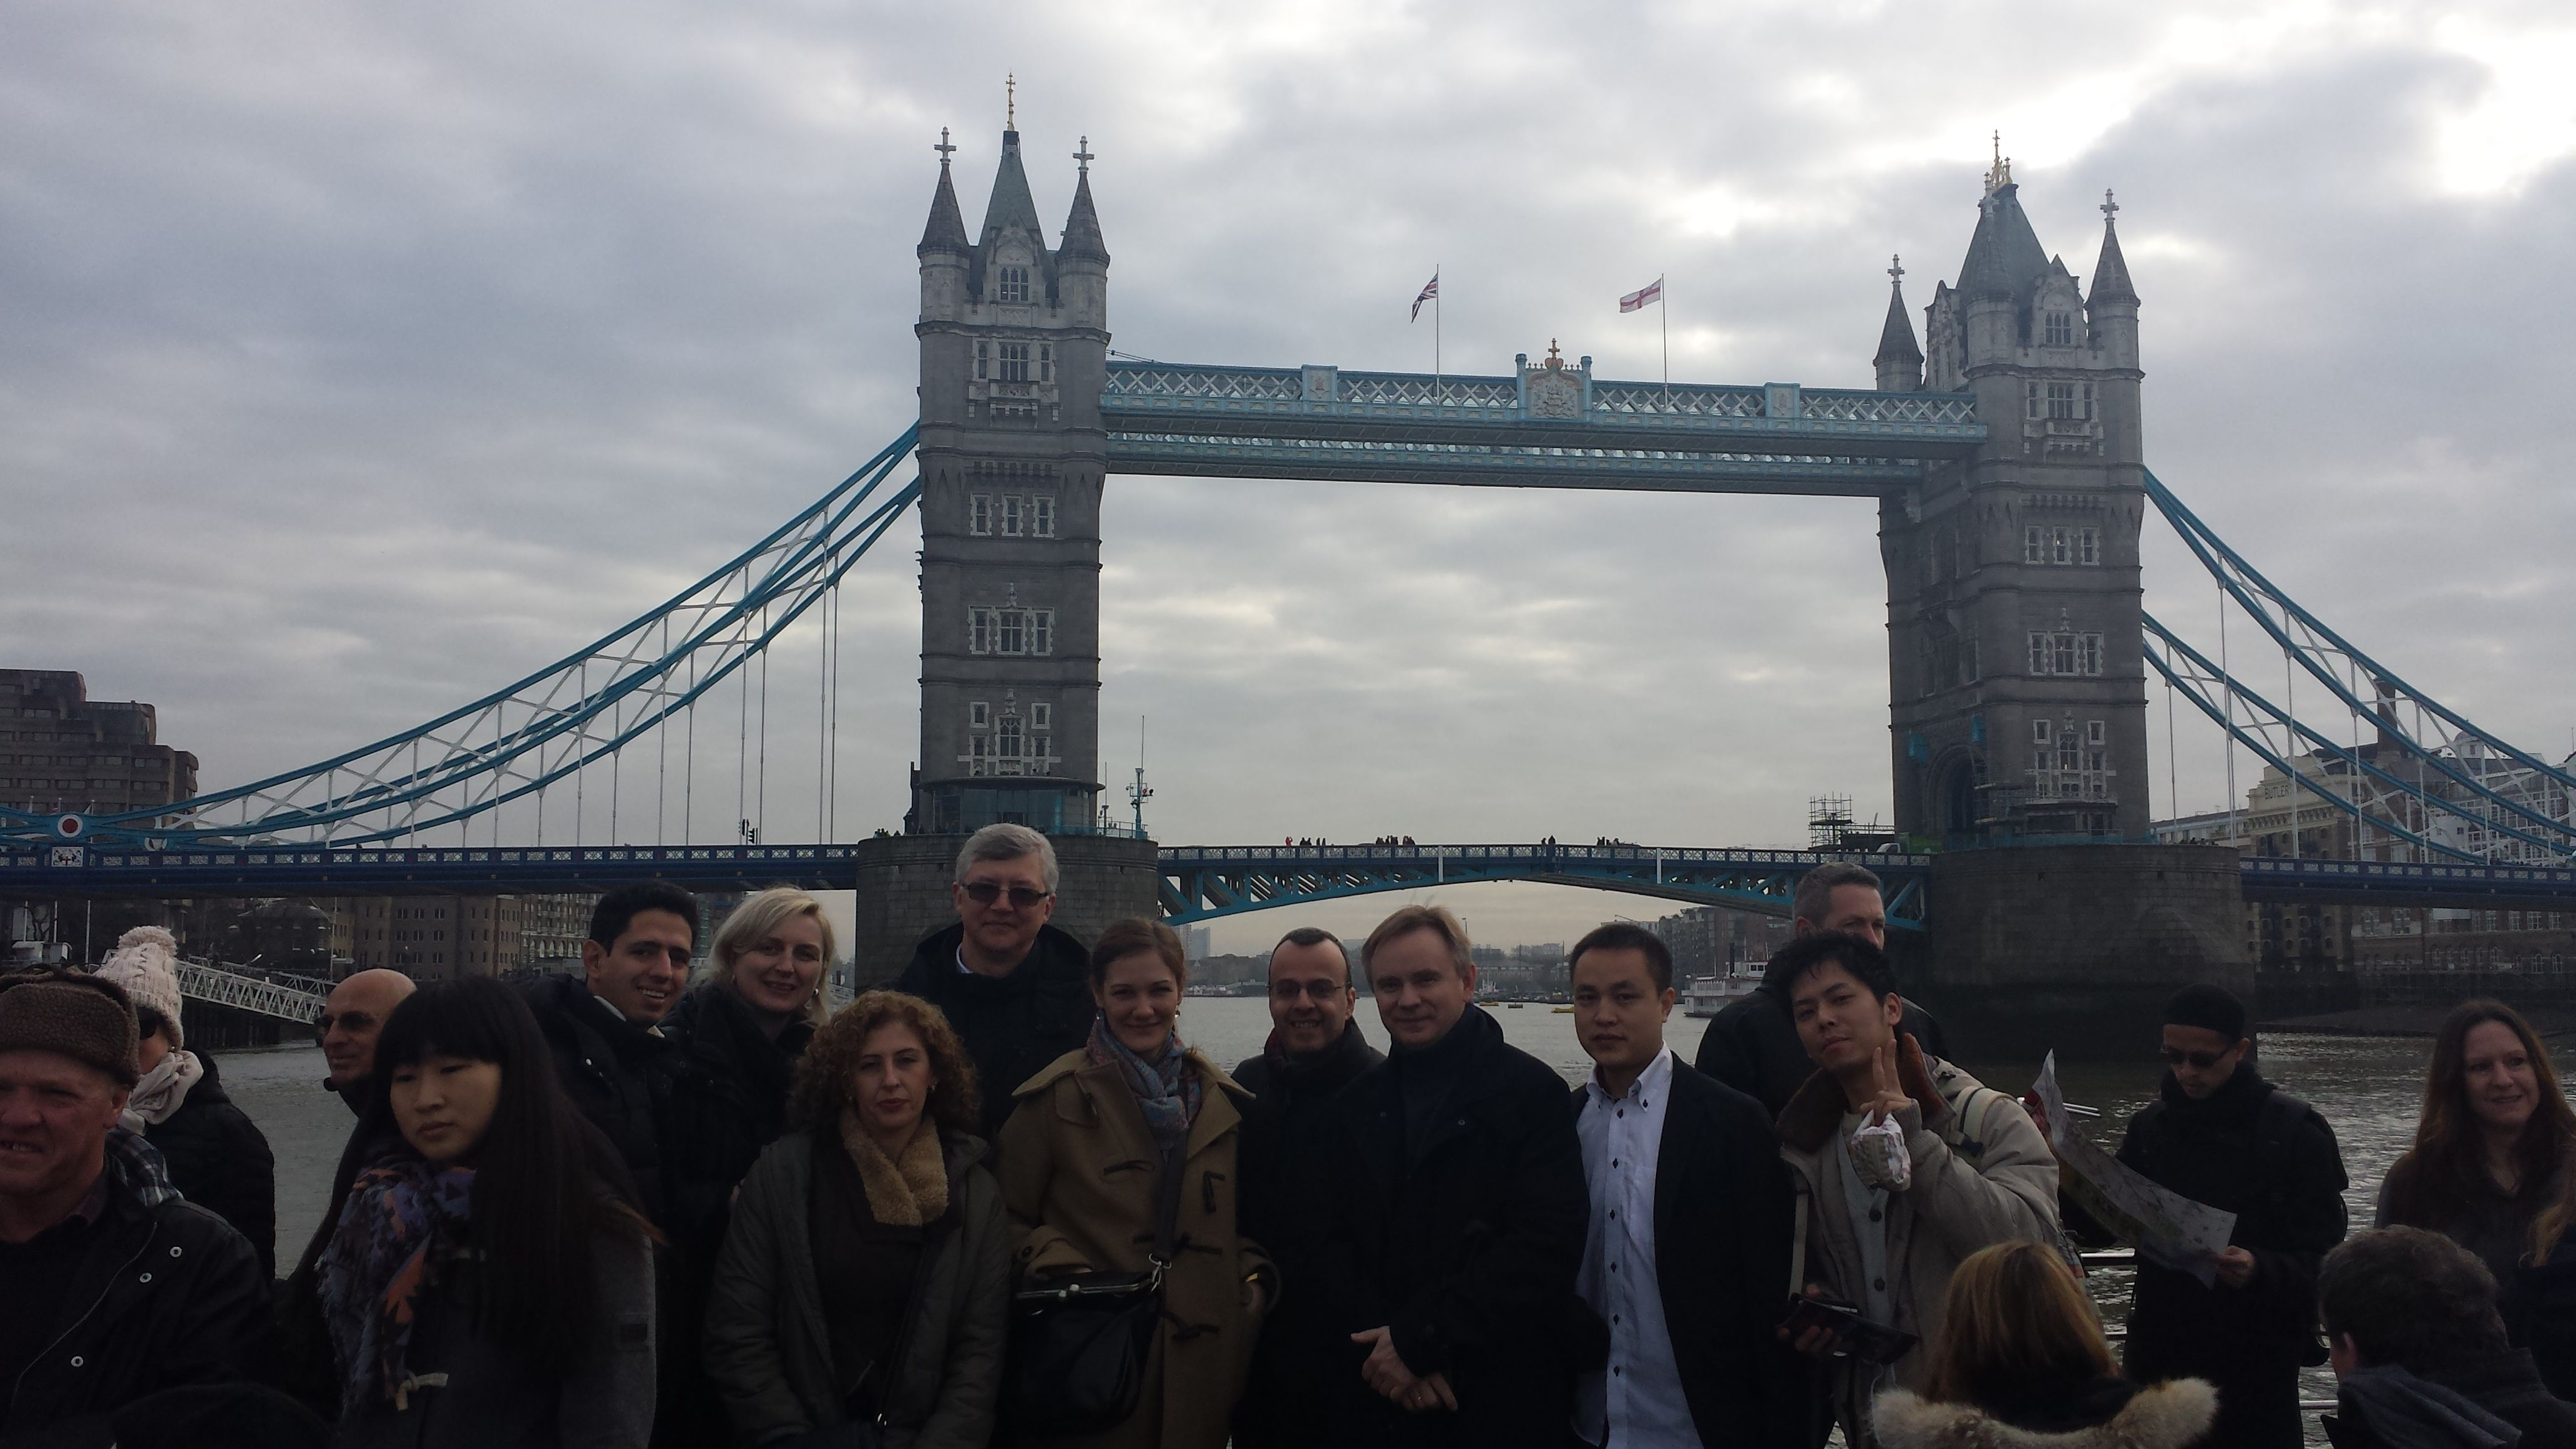 Thames cruise to Greenwich with Kathrin. 28th January 2014